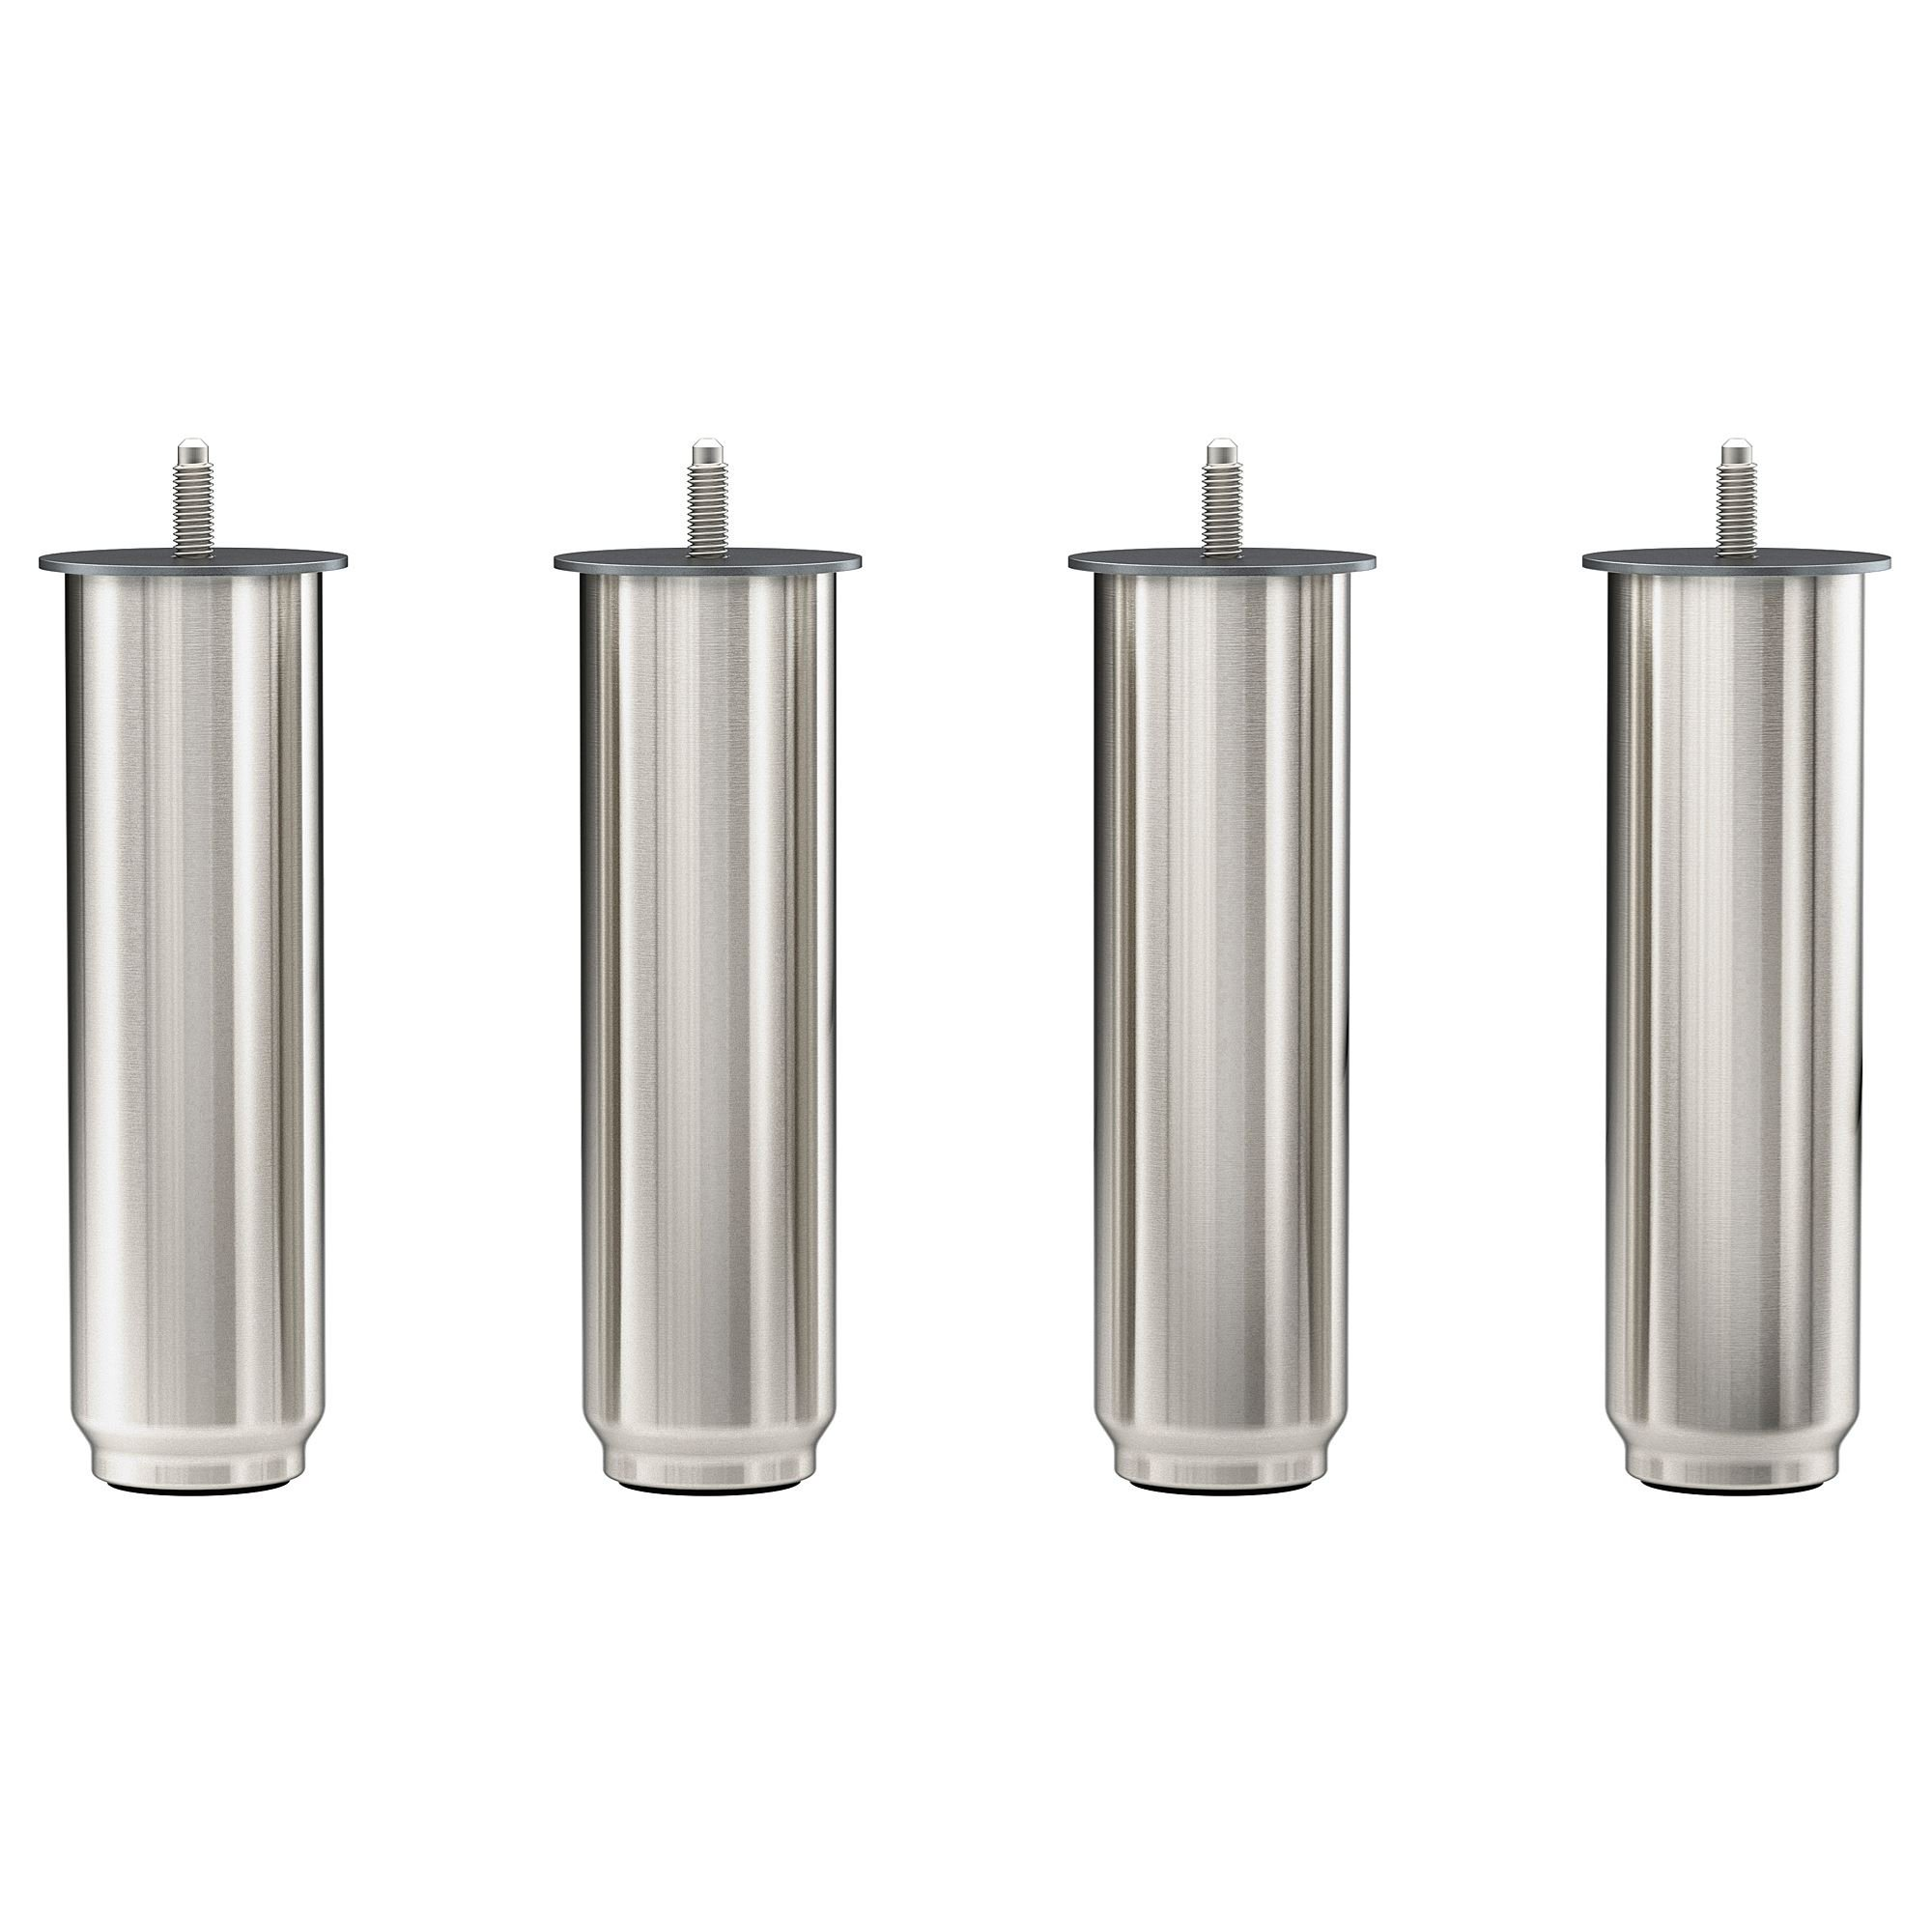 """IKEA NORSBORG 7 1/8"""" FURNITURE SOFA LEGS 